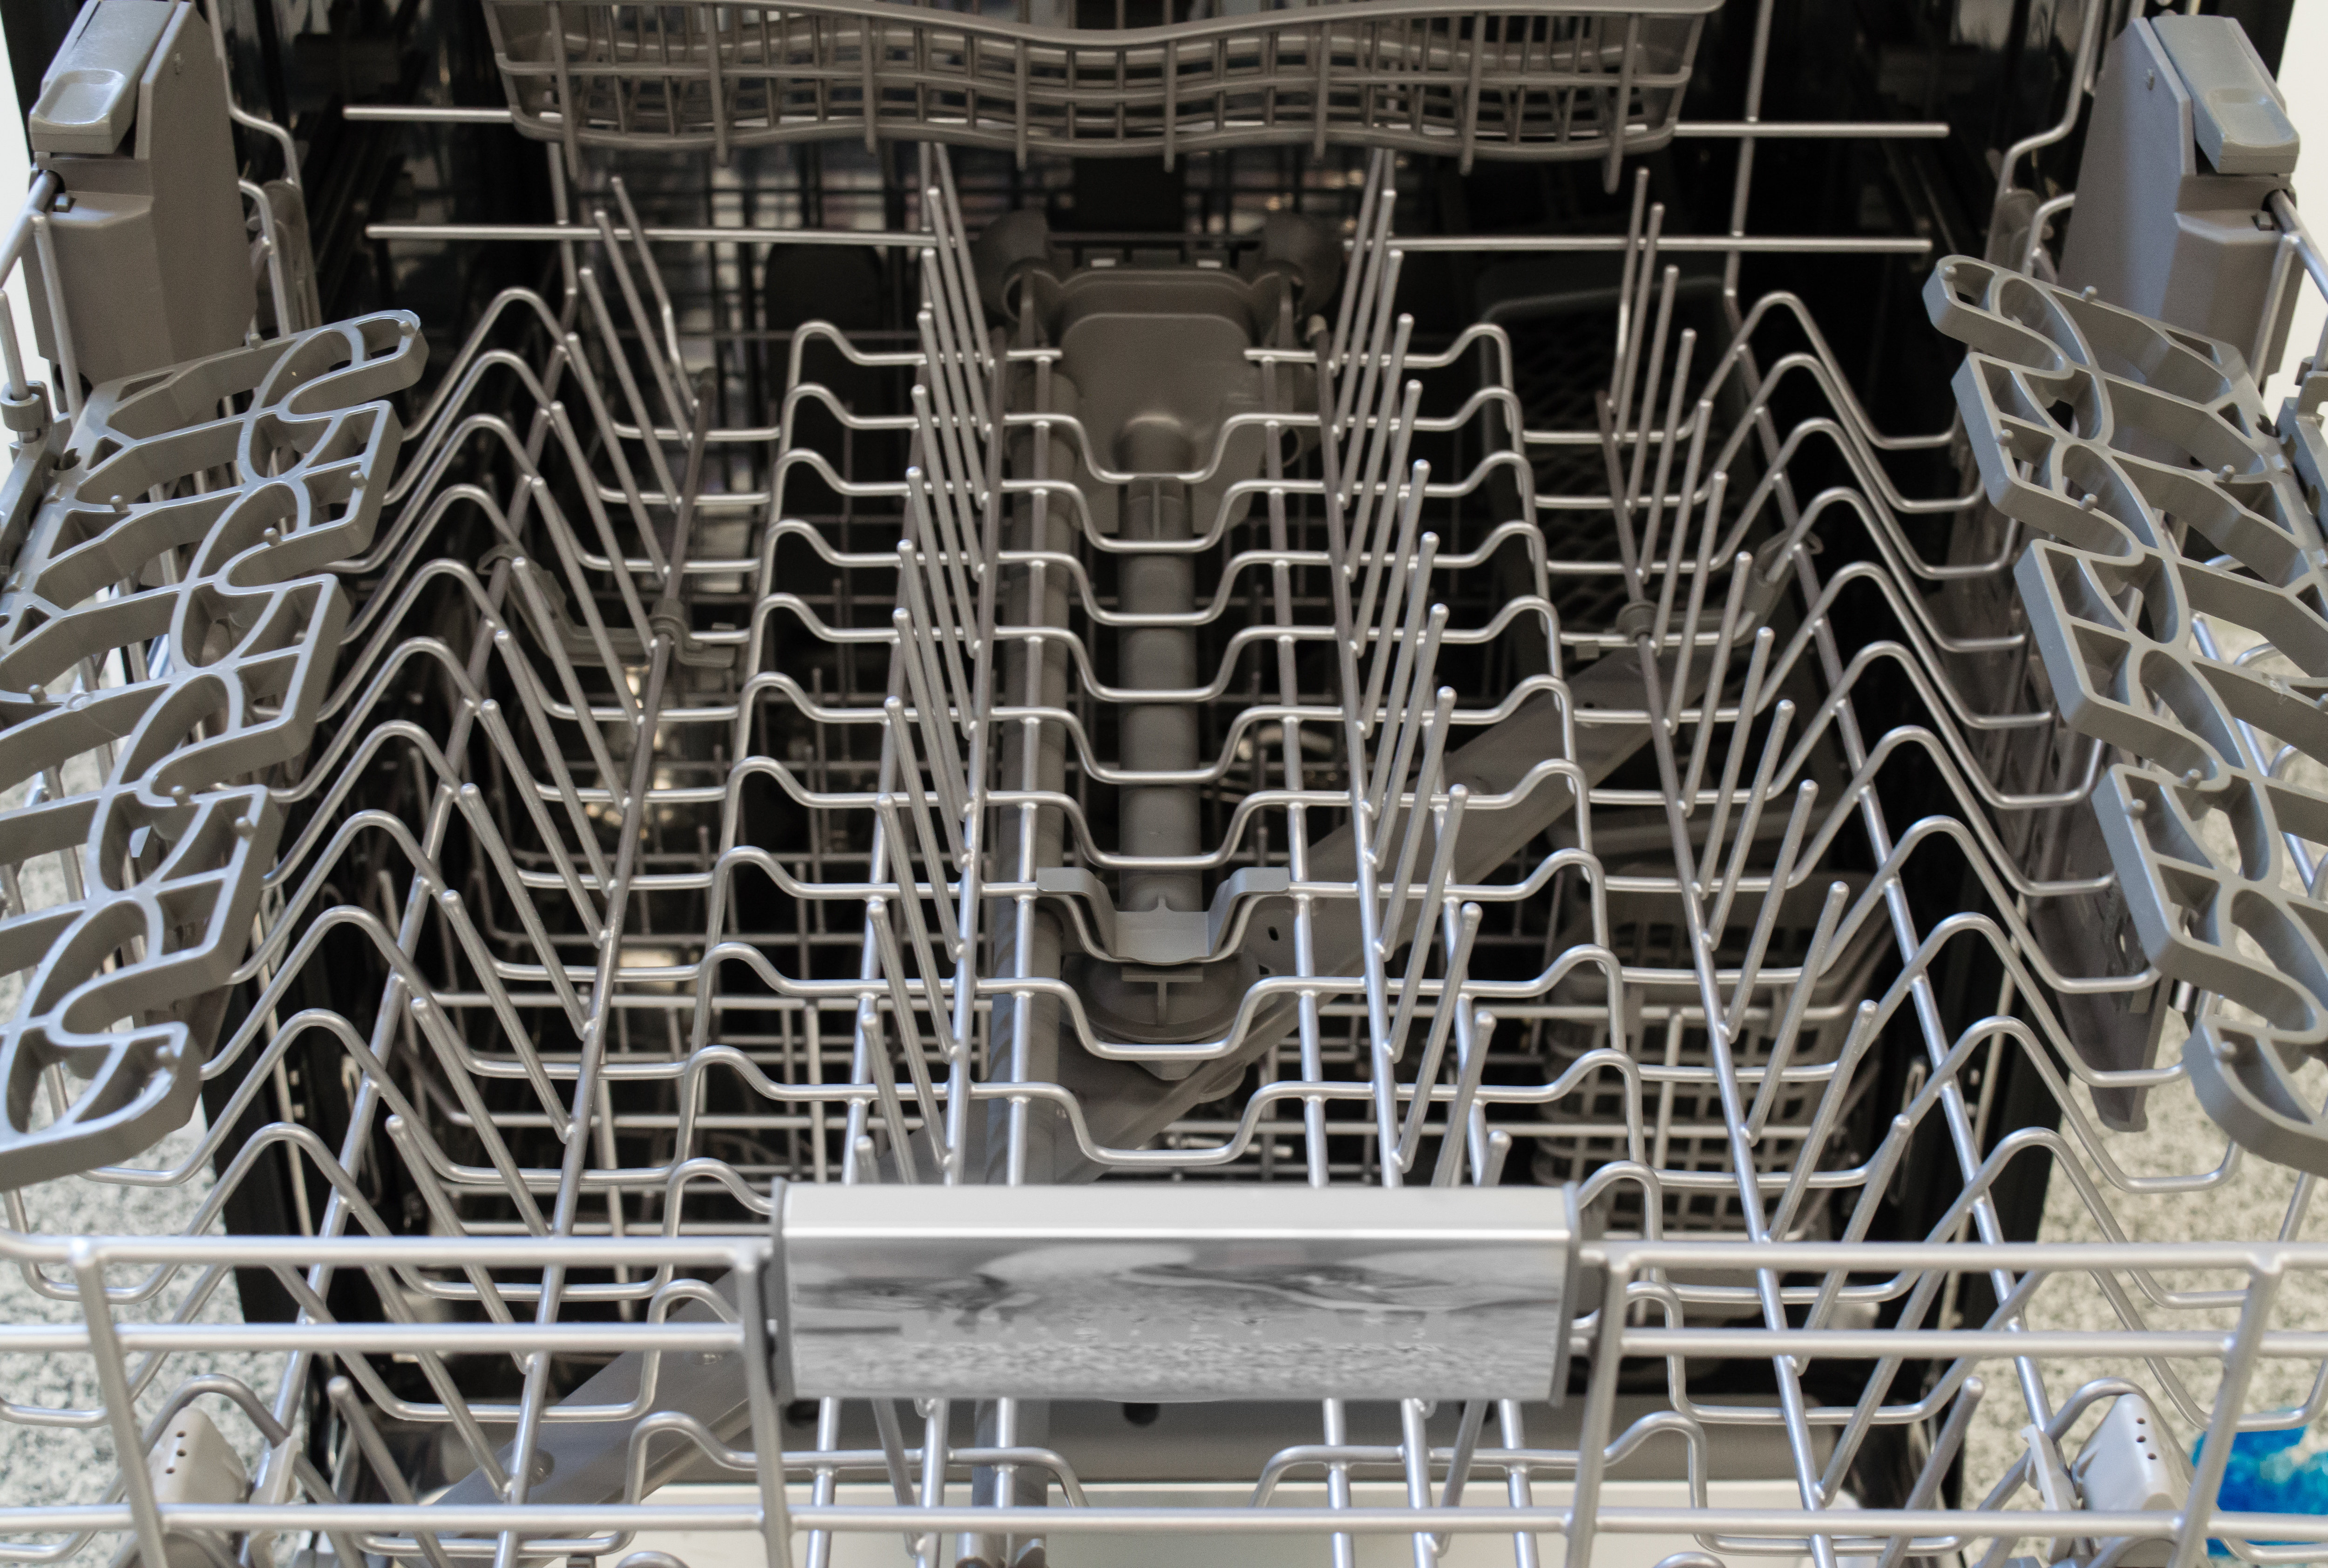 KitchenAid KDTM384ESS Dishwasher Review - Reviewed.com Dishwashers